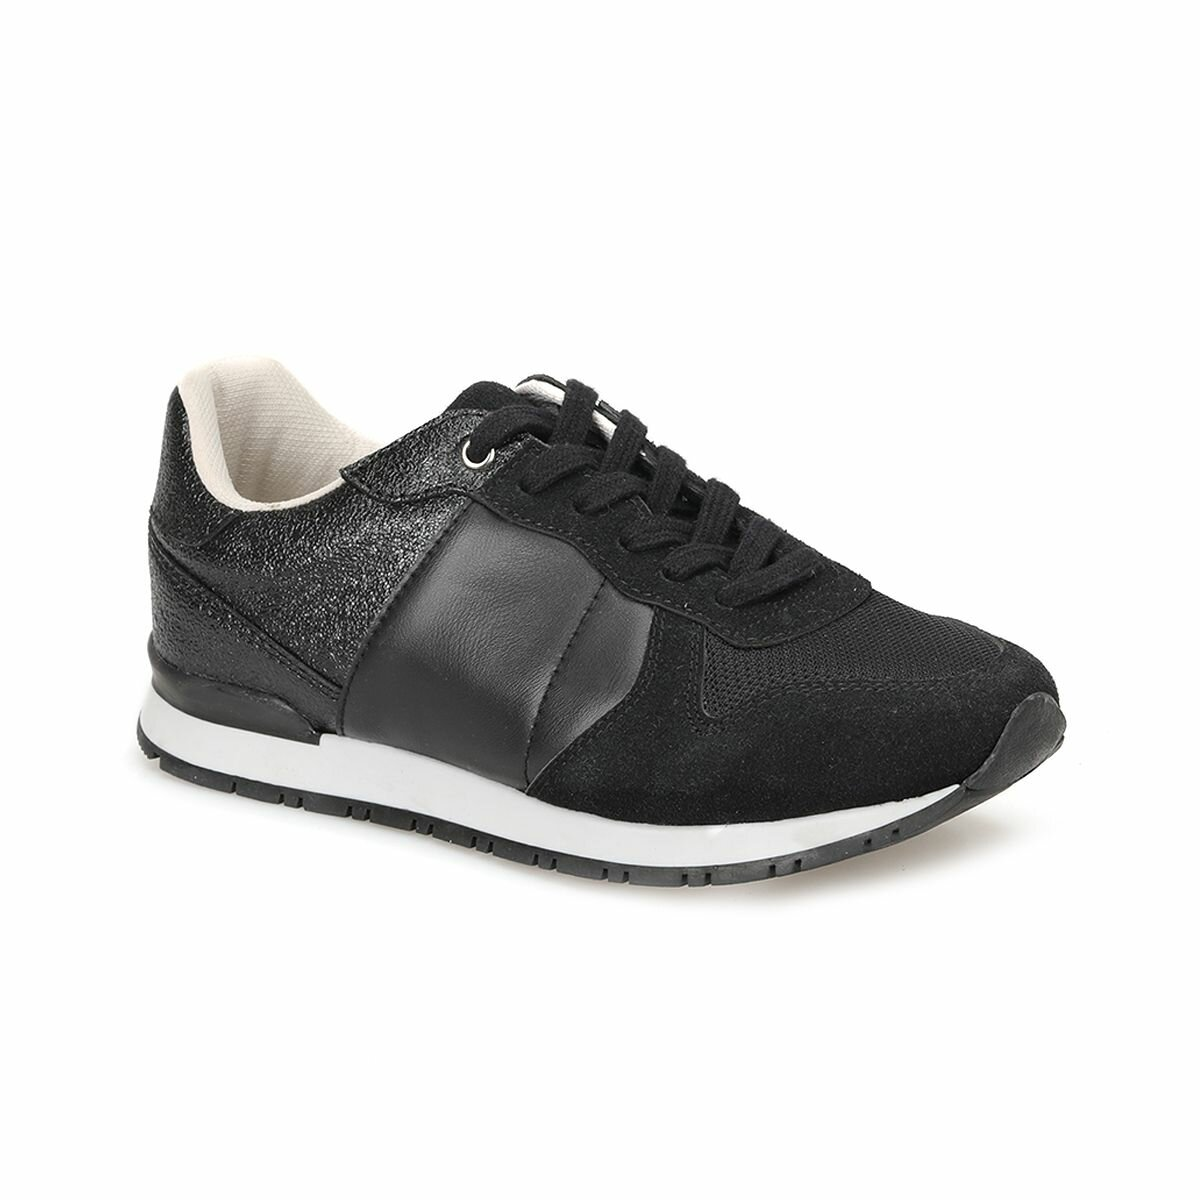 FLO CW18072 Black Women 'S Sports Shoes Art Bella